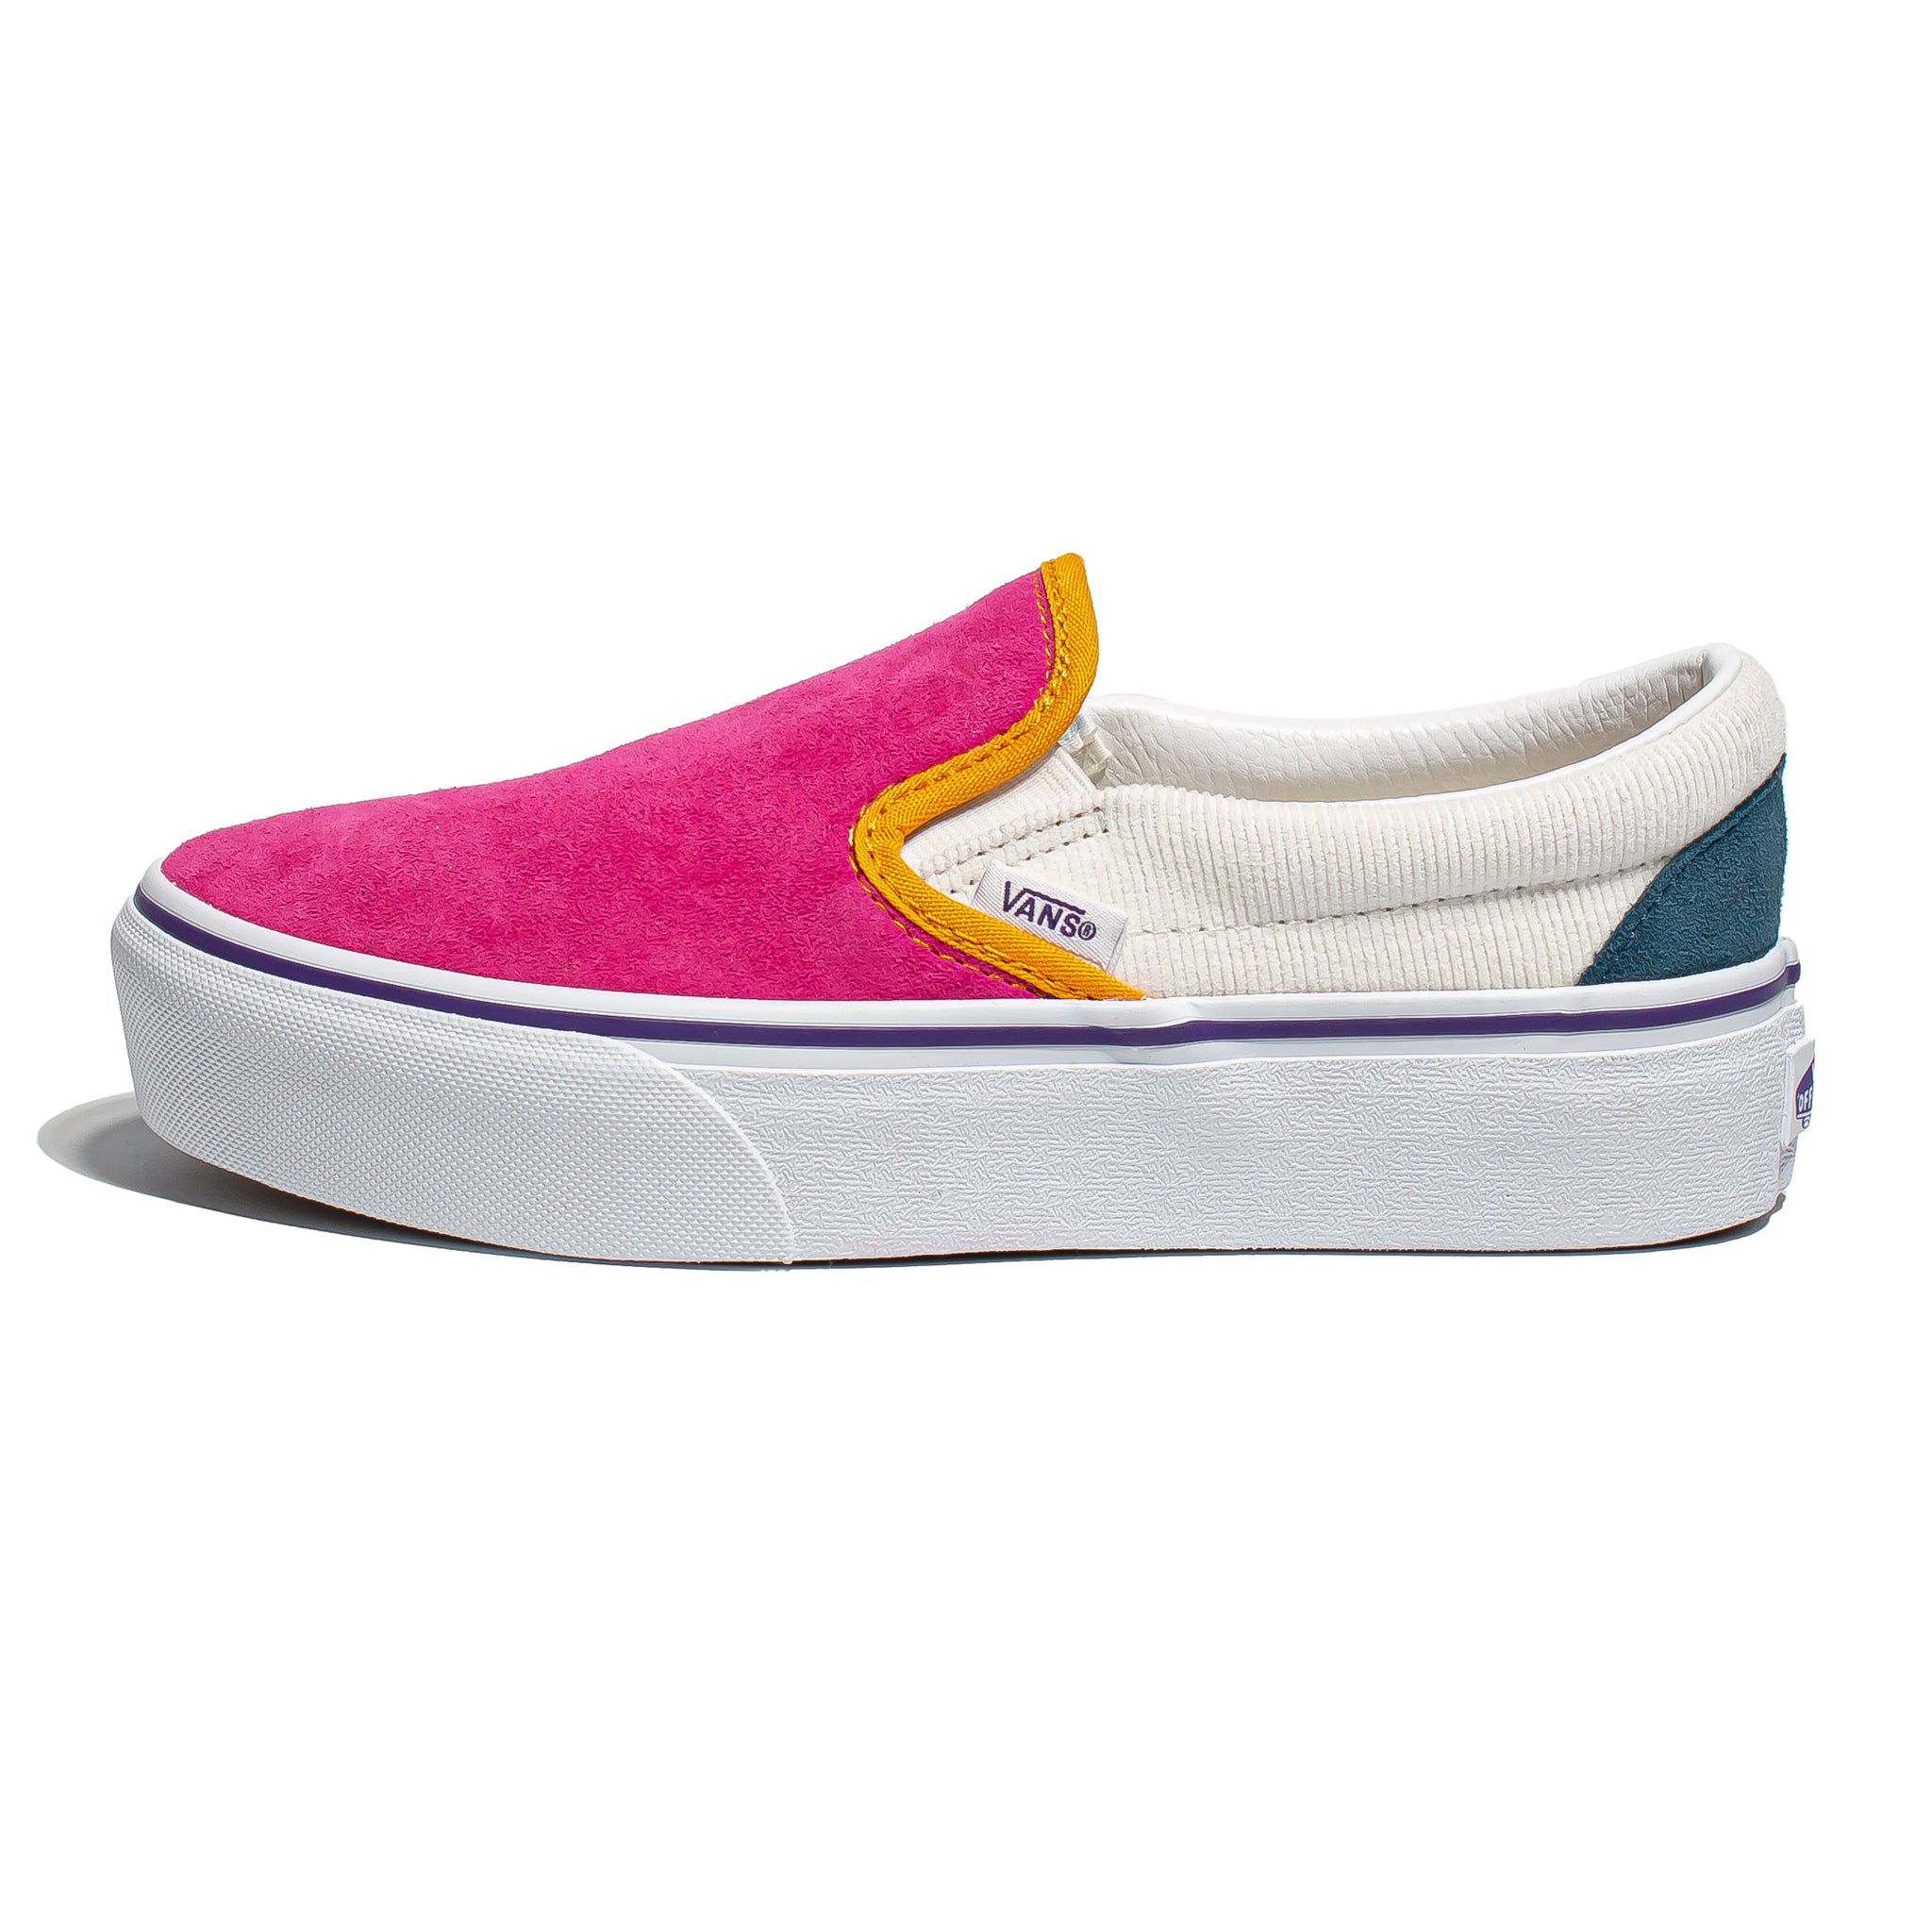 Vans Slip-On Platform Mini Cord